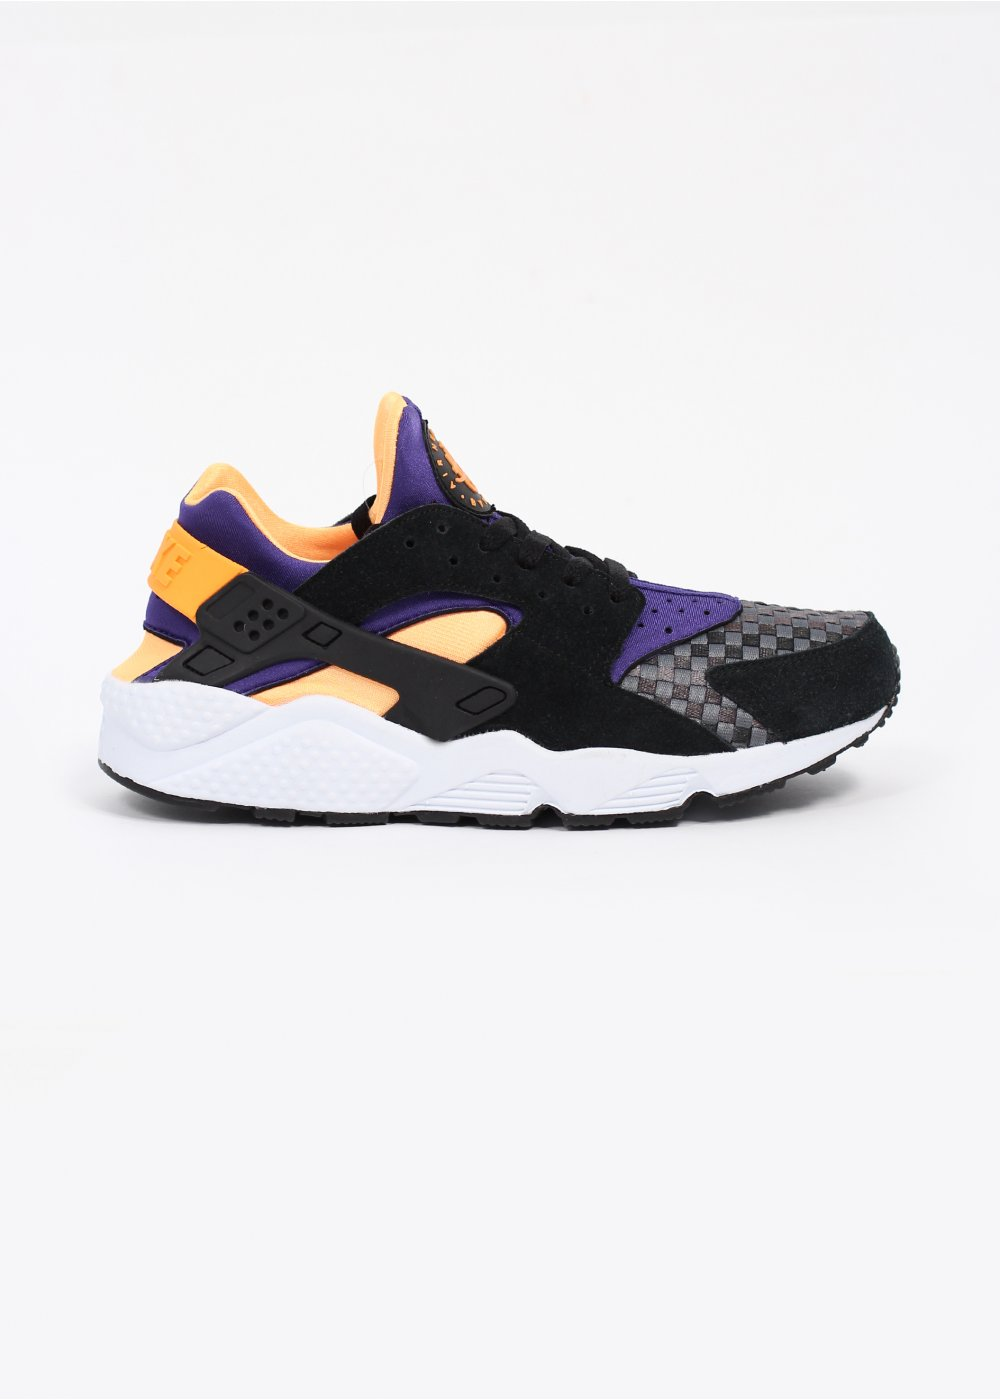 size 40 9e60f 6c23c Air Huarache Run Woven Trainers - Black   Atomic Mango